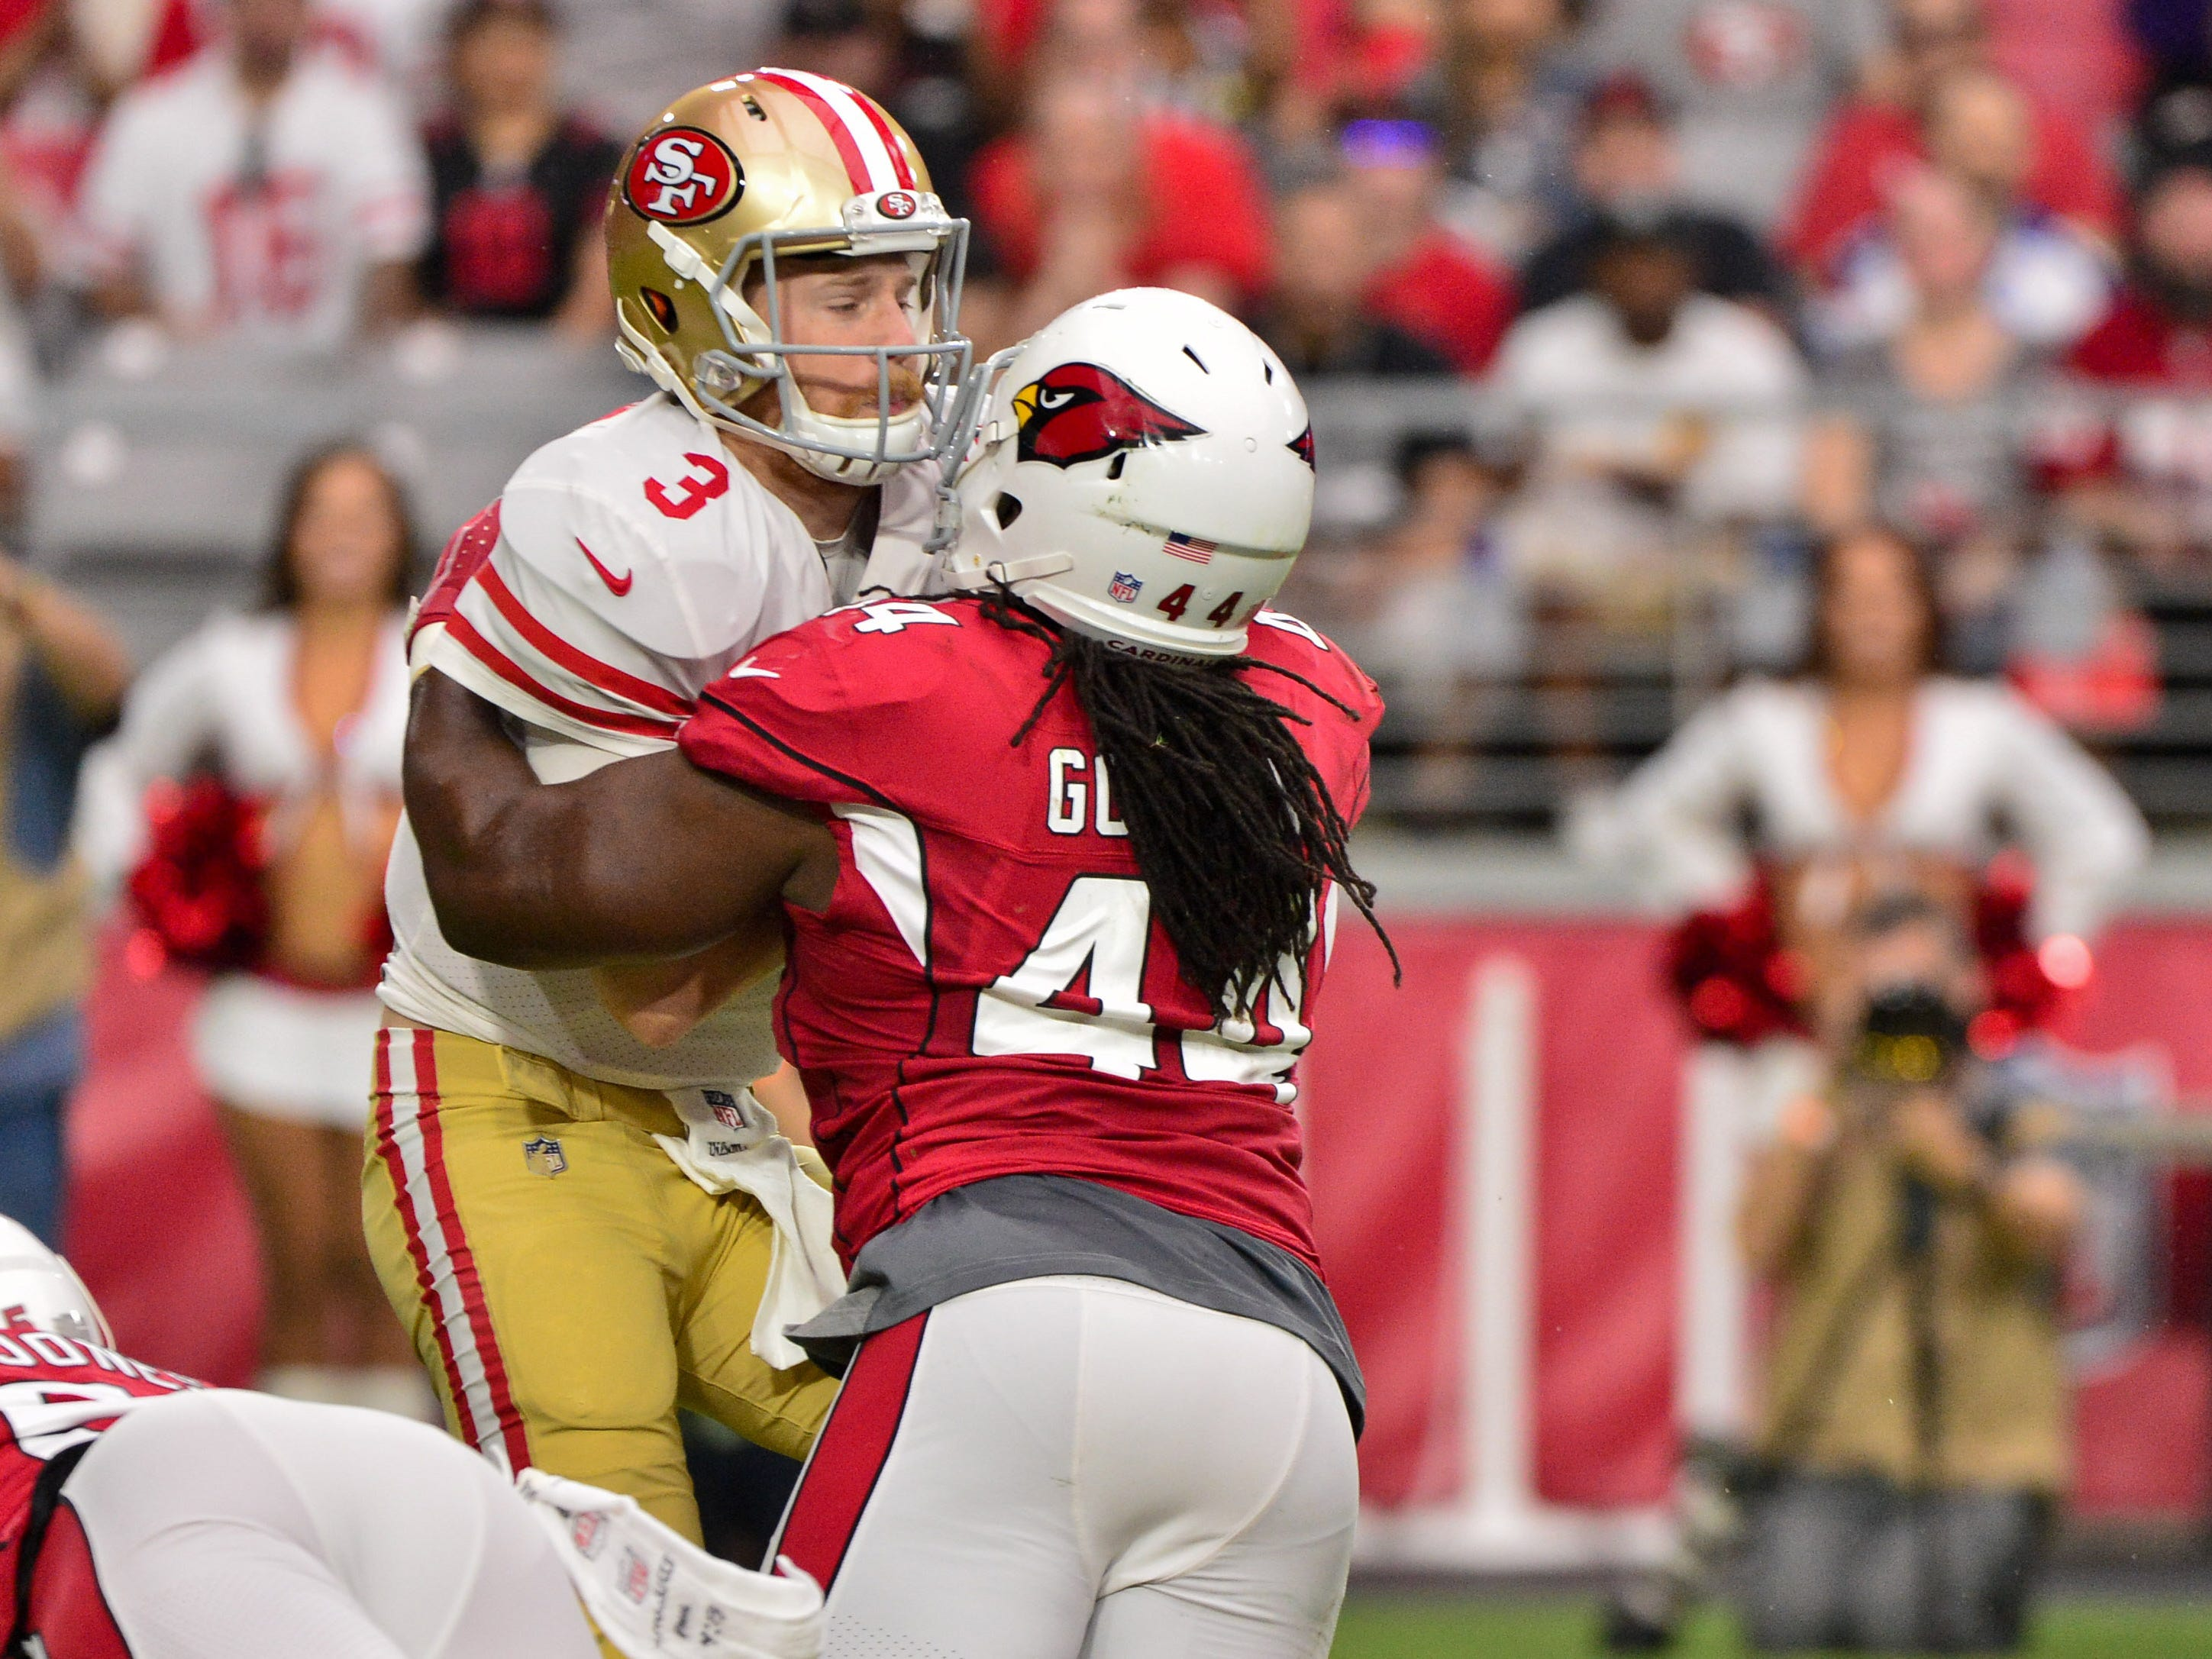 Oct 28, 2018; Glendale, AZ, USA; Arizona Cardinals defensive end Markus Golden (44) sacks San Francisco 49ers quarterback C.J. Beathard (3) during the first half at State Farm Stadium.